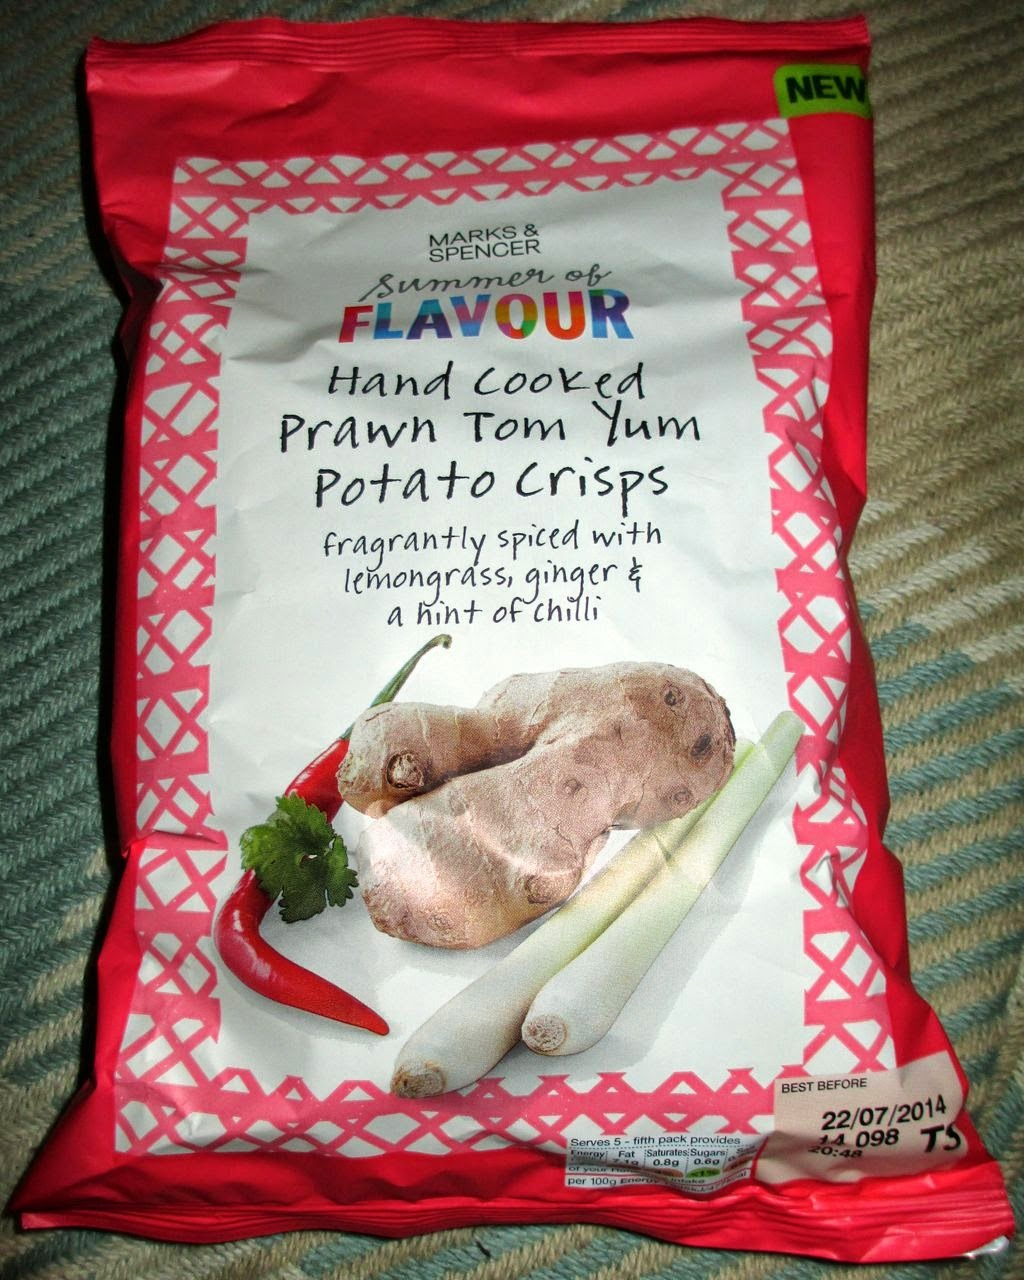 Hand Cooked Prawn Tom Yum Potato Crisps (@MarksAndSpencer) [By @SpectreUK]